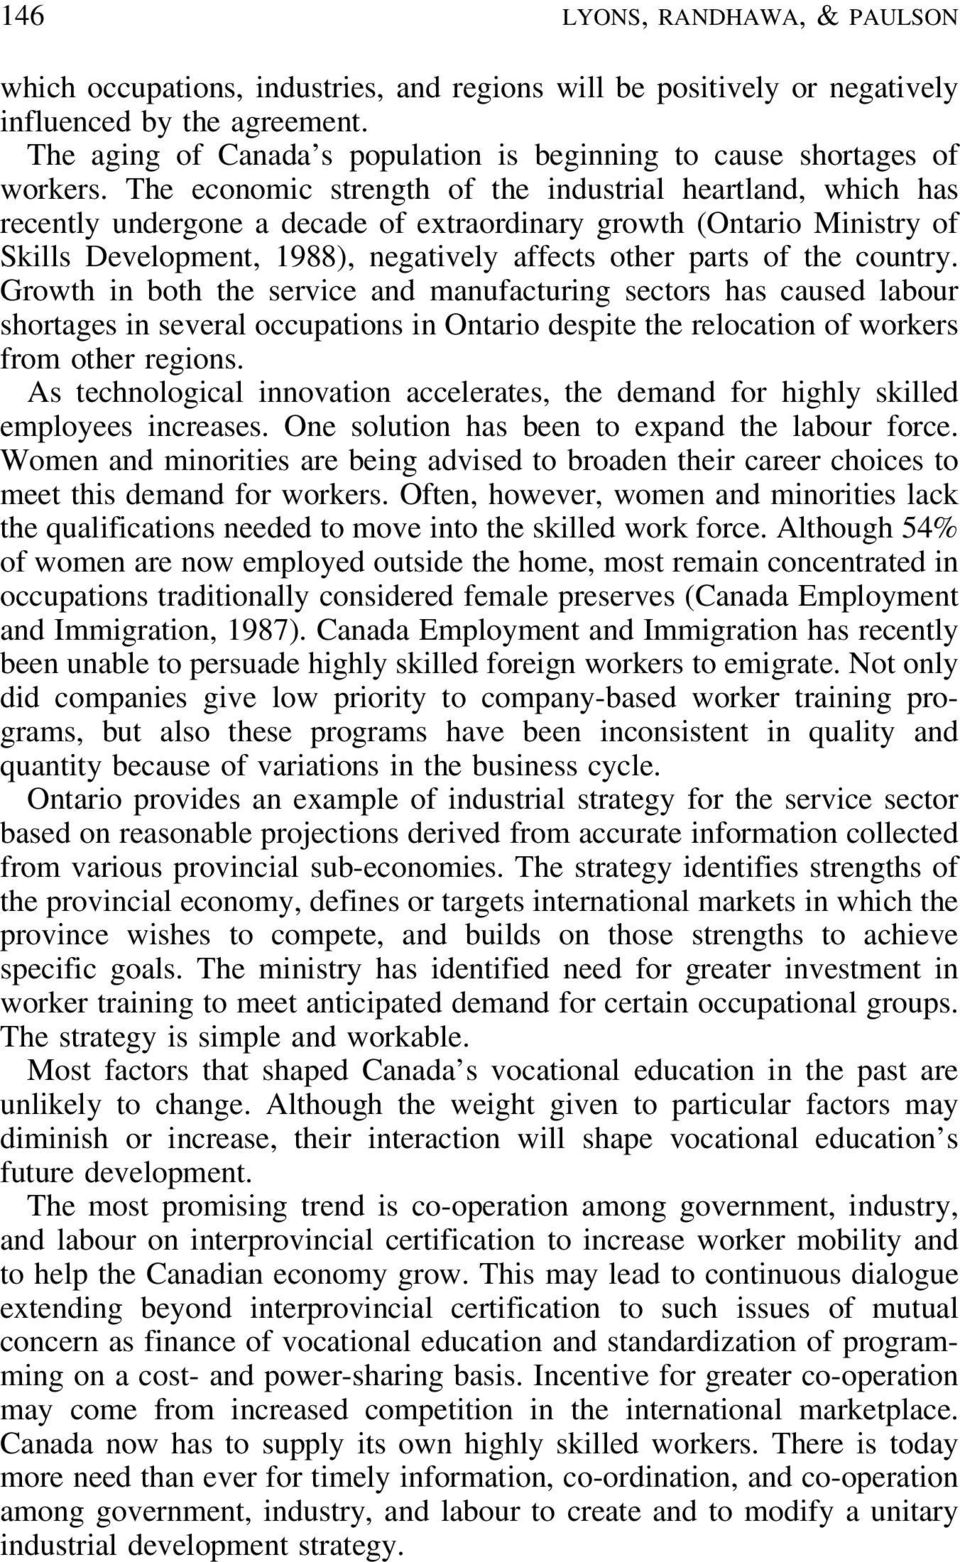 The economic strength of the industrial heartland, which has recently undergone a decade of extraordinary growth (Ontario Ministry of Skills Development, 1988), negatively affects other parts of the